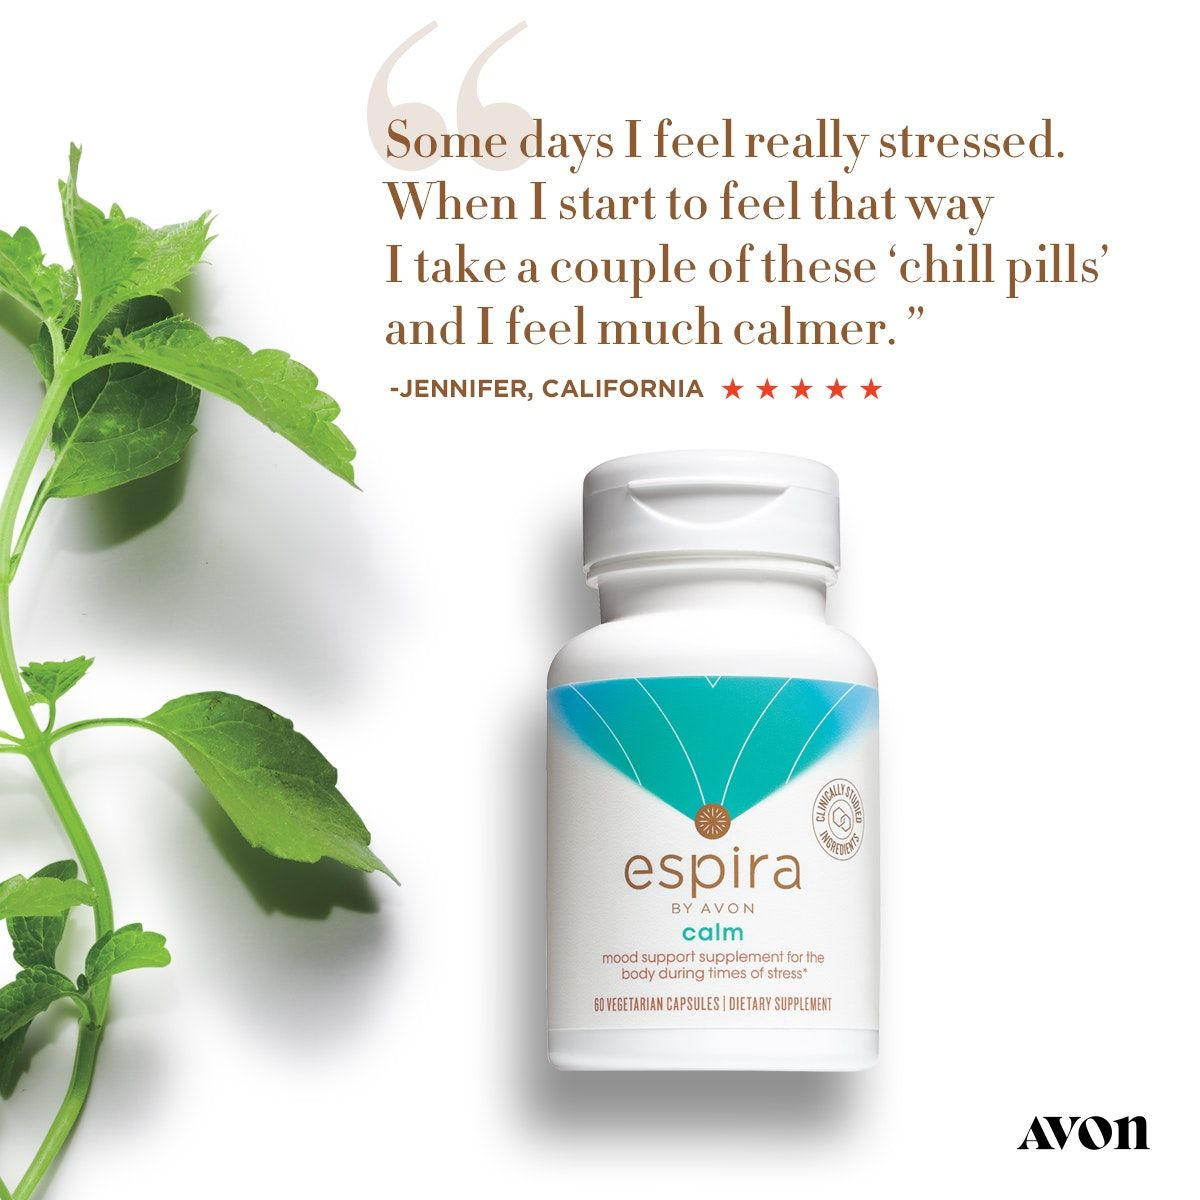 OPTIMIZE YOUR OVERALL HEALTH AND WELLBEING Avon, Calm